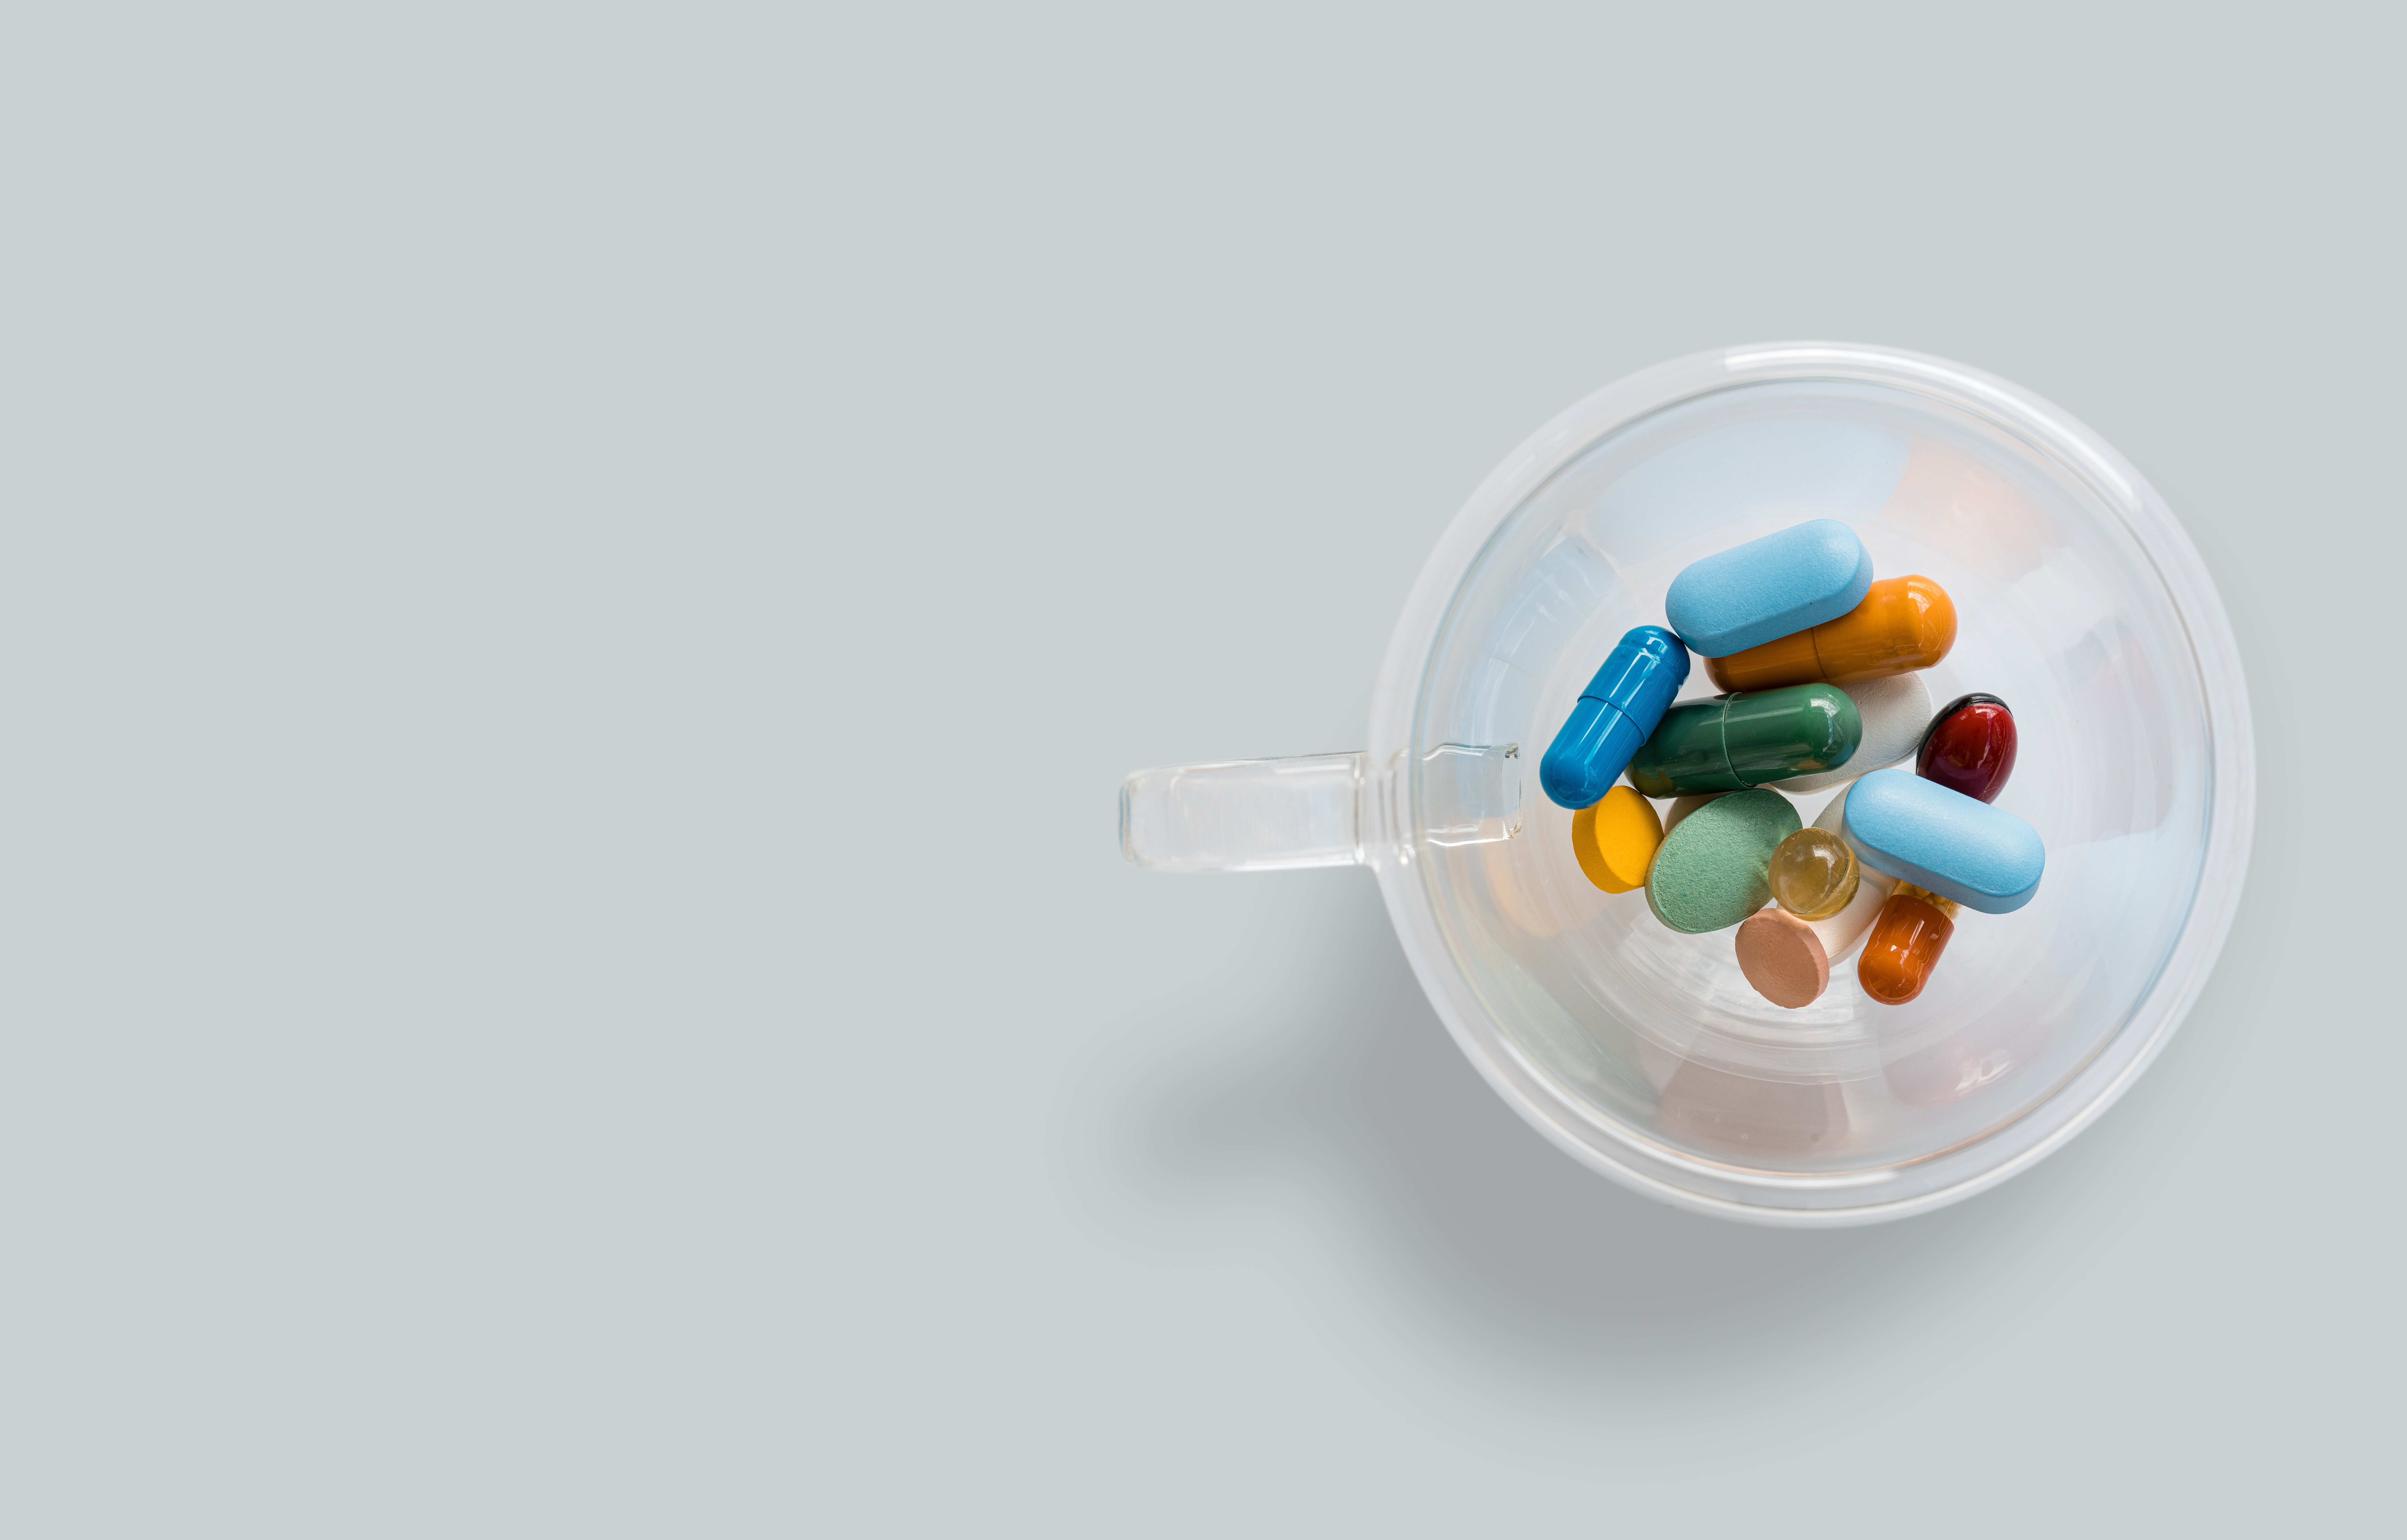 Antidepressants vs. Ketamine Therapy and Combination Therapy for Treating Depression